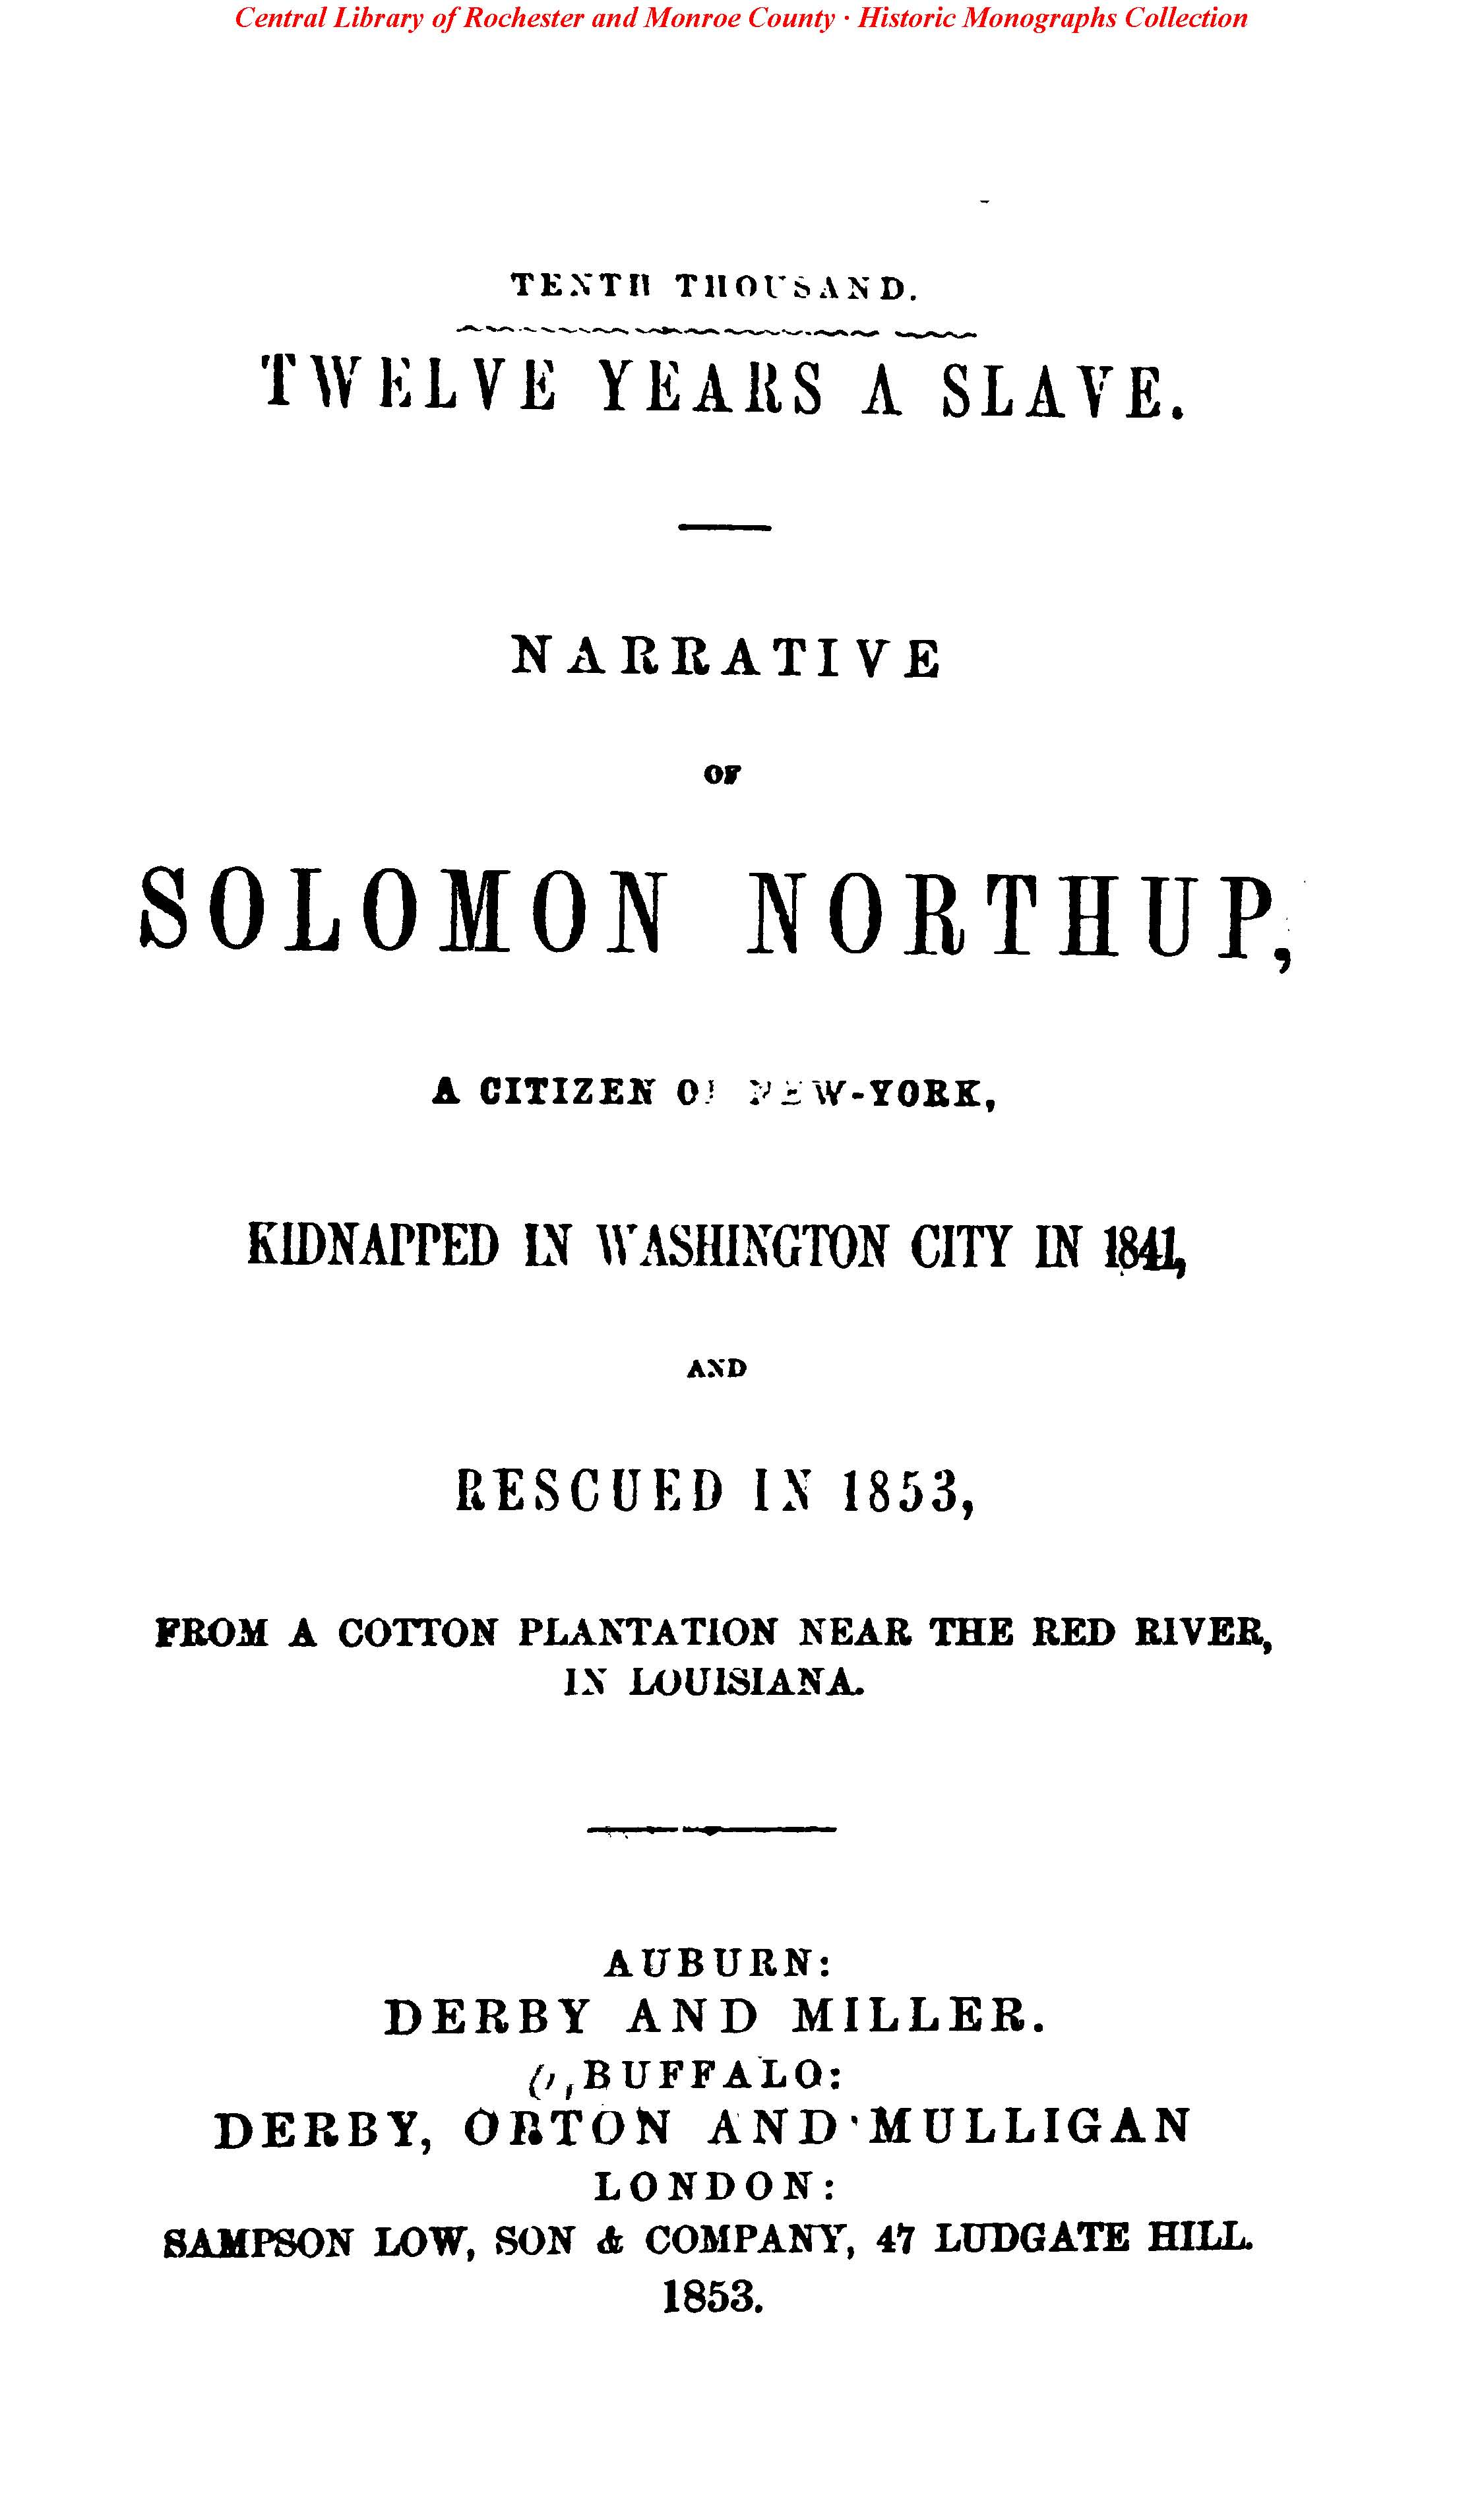 an analysis of the book 12 years a slave by solomon northup Of the new york public library and uploaded to the internet archive by user 12 years a slave just 12 years a slave narrative of solomon northup.